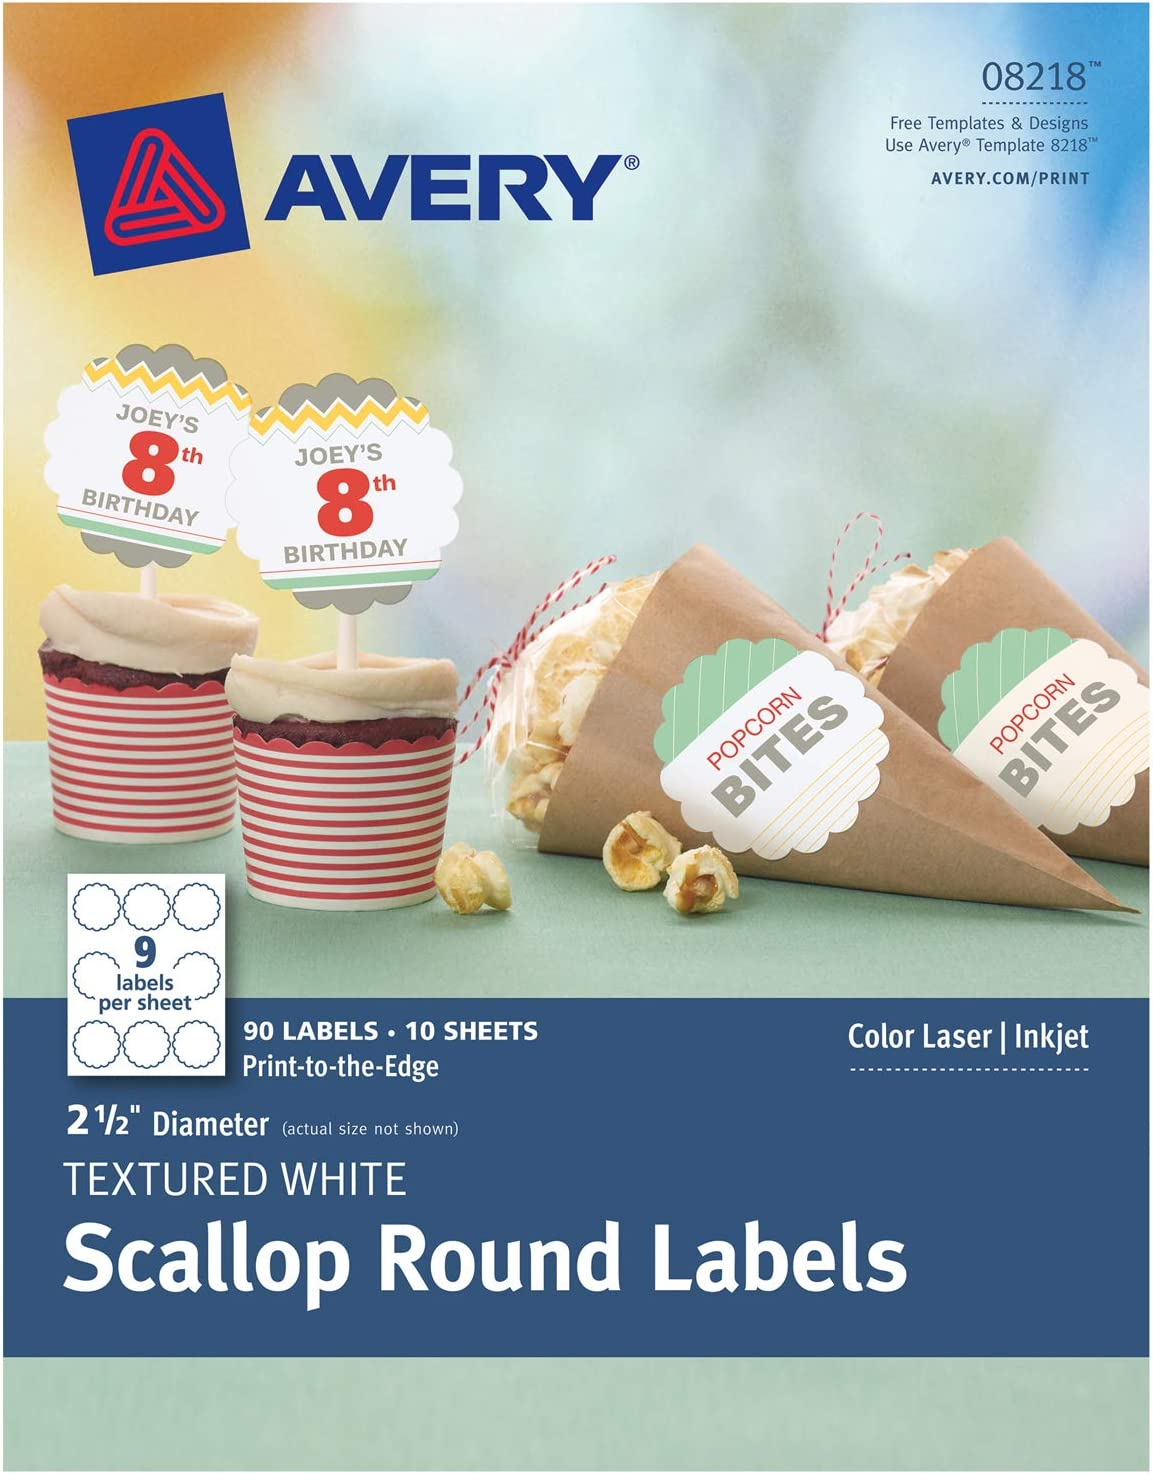 Avery Scallop 2.5 Inch Round Labels with Sure Feed for Laser & Inkjet Printers, 90 White Labels (8218)